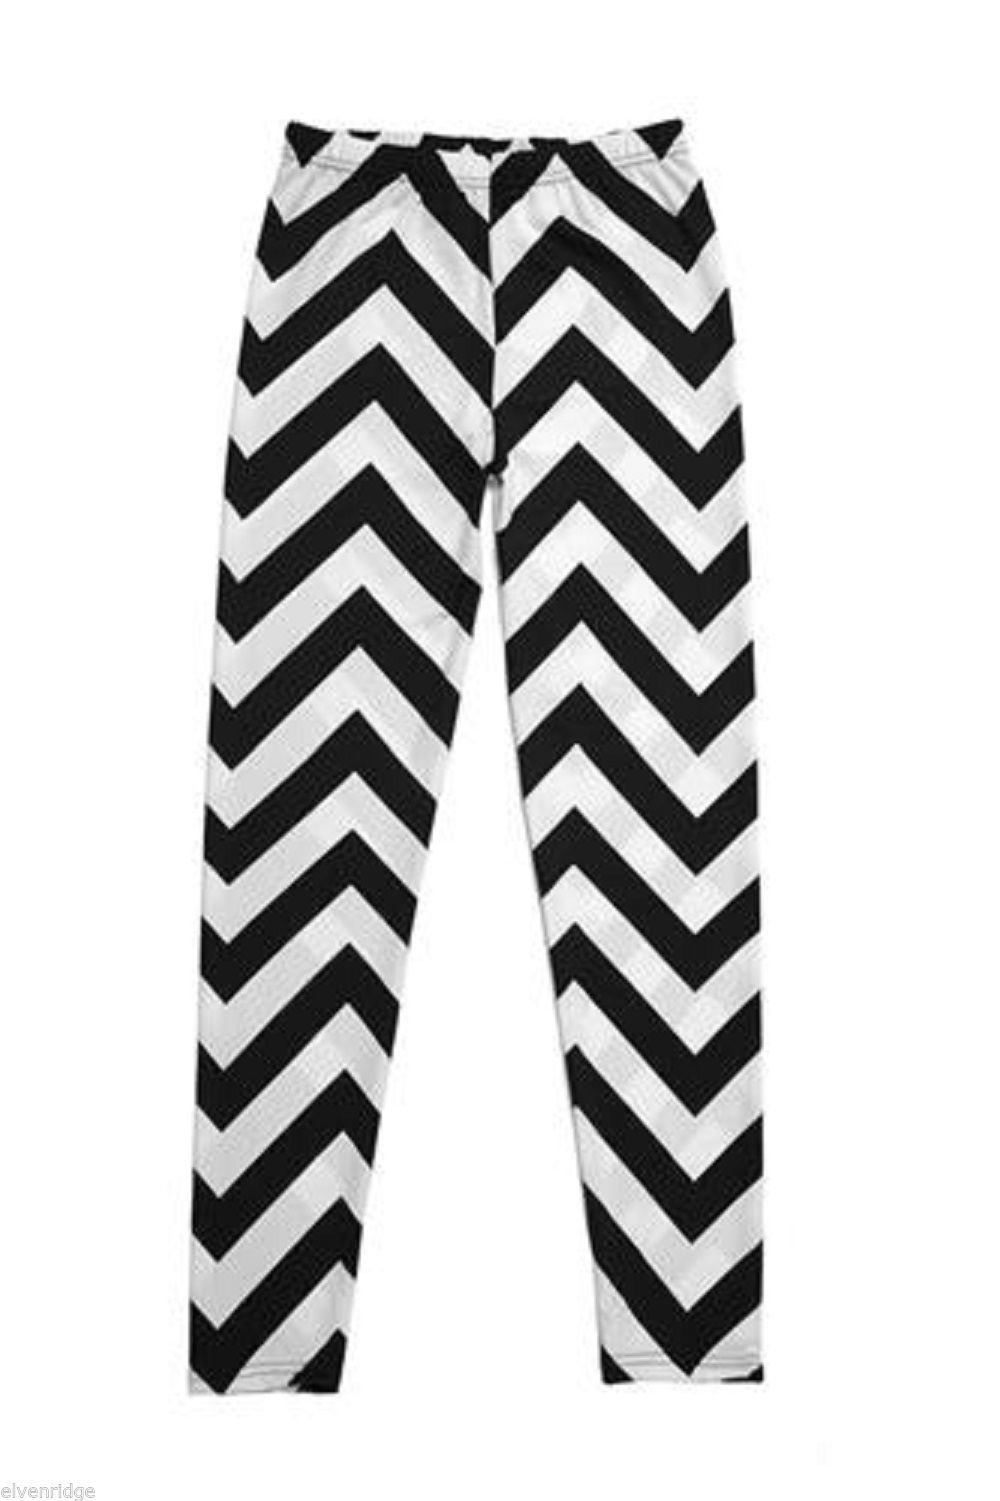 Black and White Chevron Leggings One Size Fits All New in Package